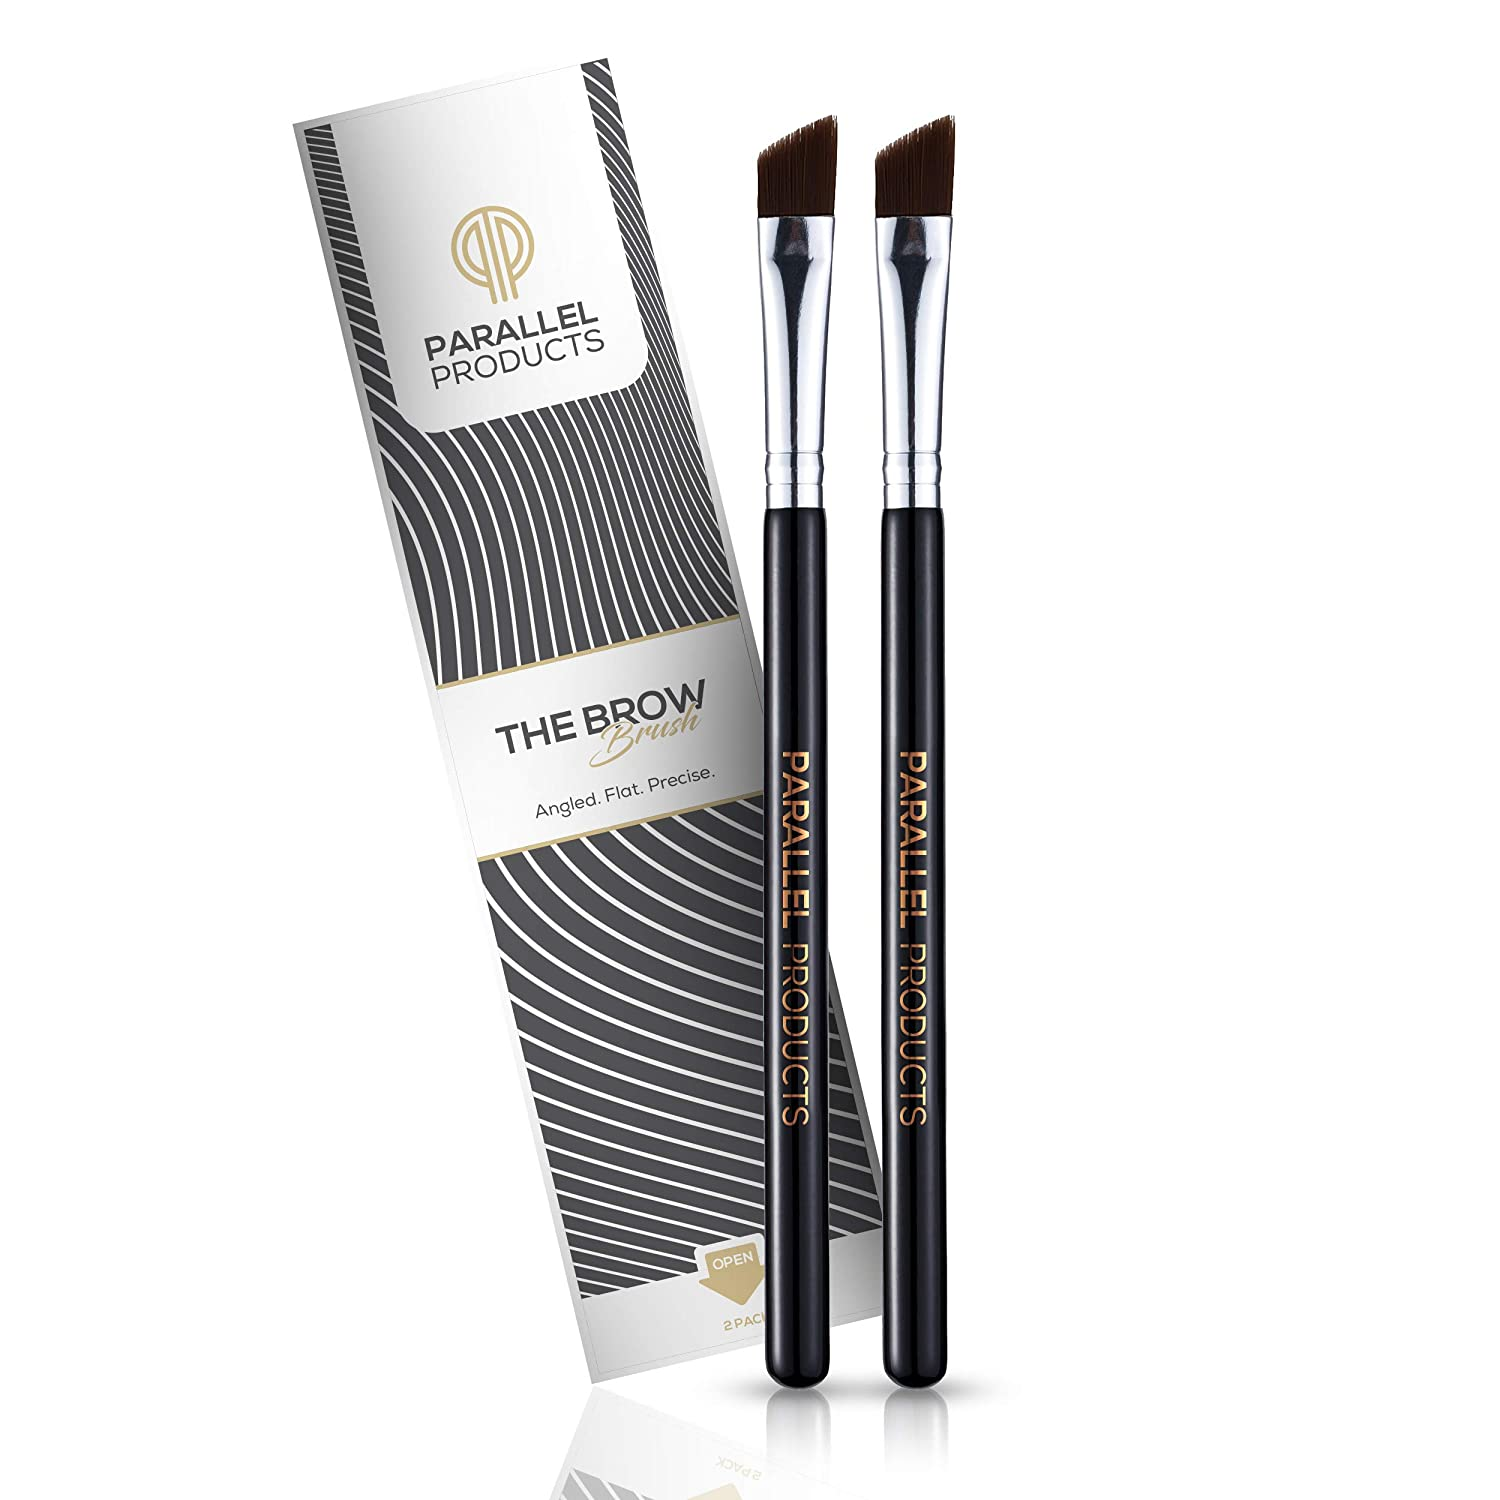 PARALLEL PRODUCTS Premium Angled Eyebrow Brush